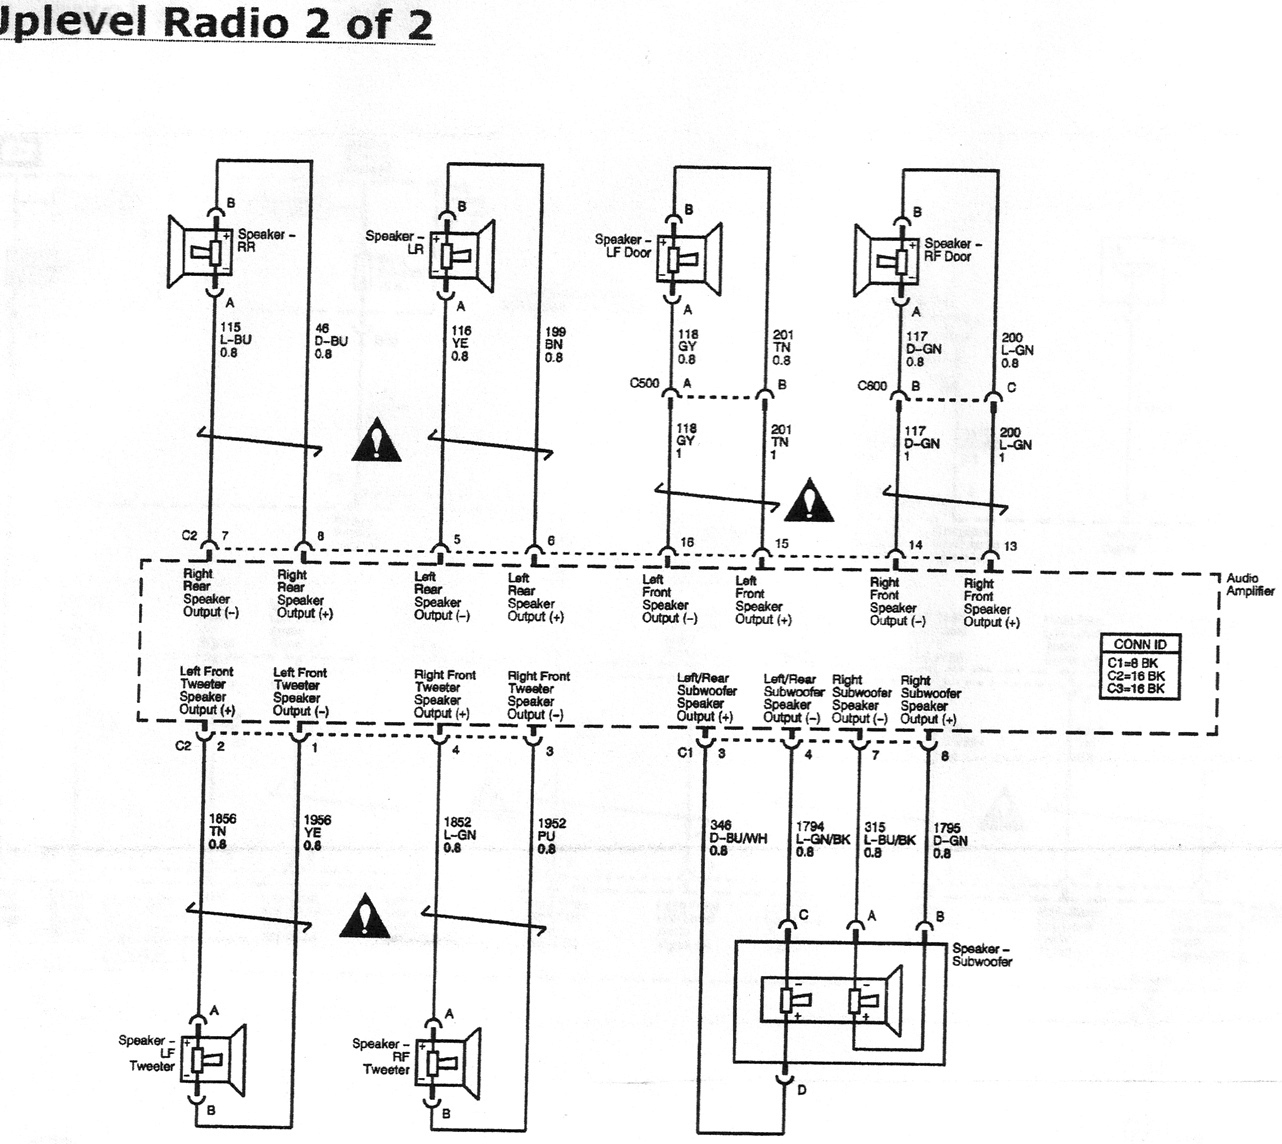 29802 monsoon amp speaker replacement monsoon_wiring_diagram_page_2 monsoon amp and speaker replacement saturn sky forums saturn firebird monsoon wiring diagram at beritabola.co